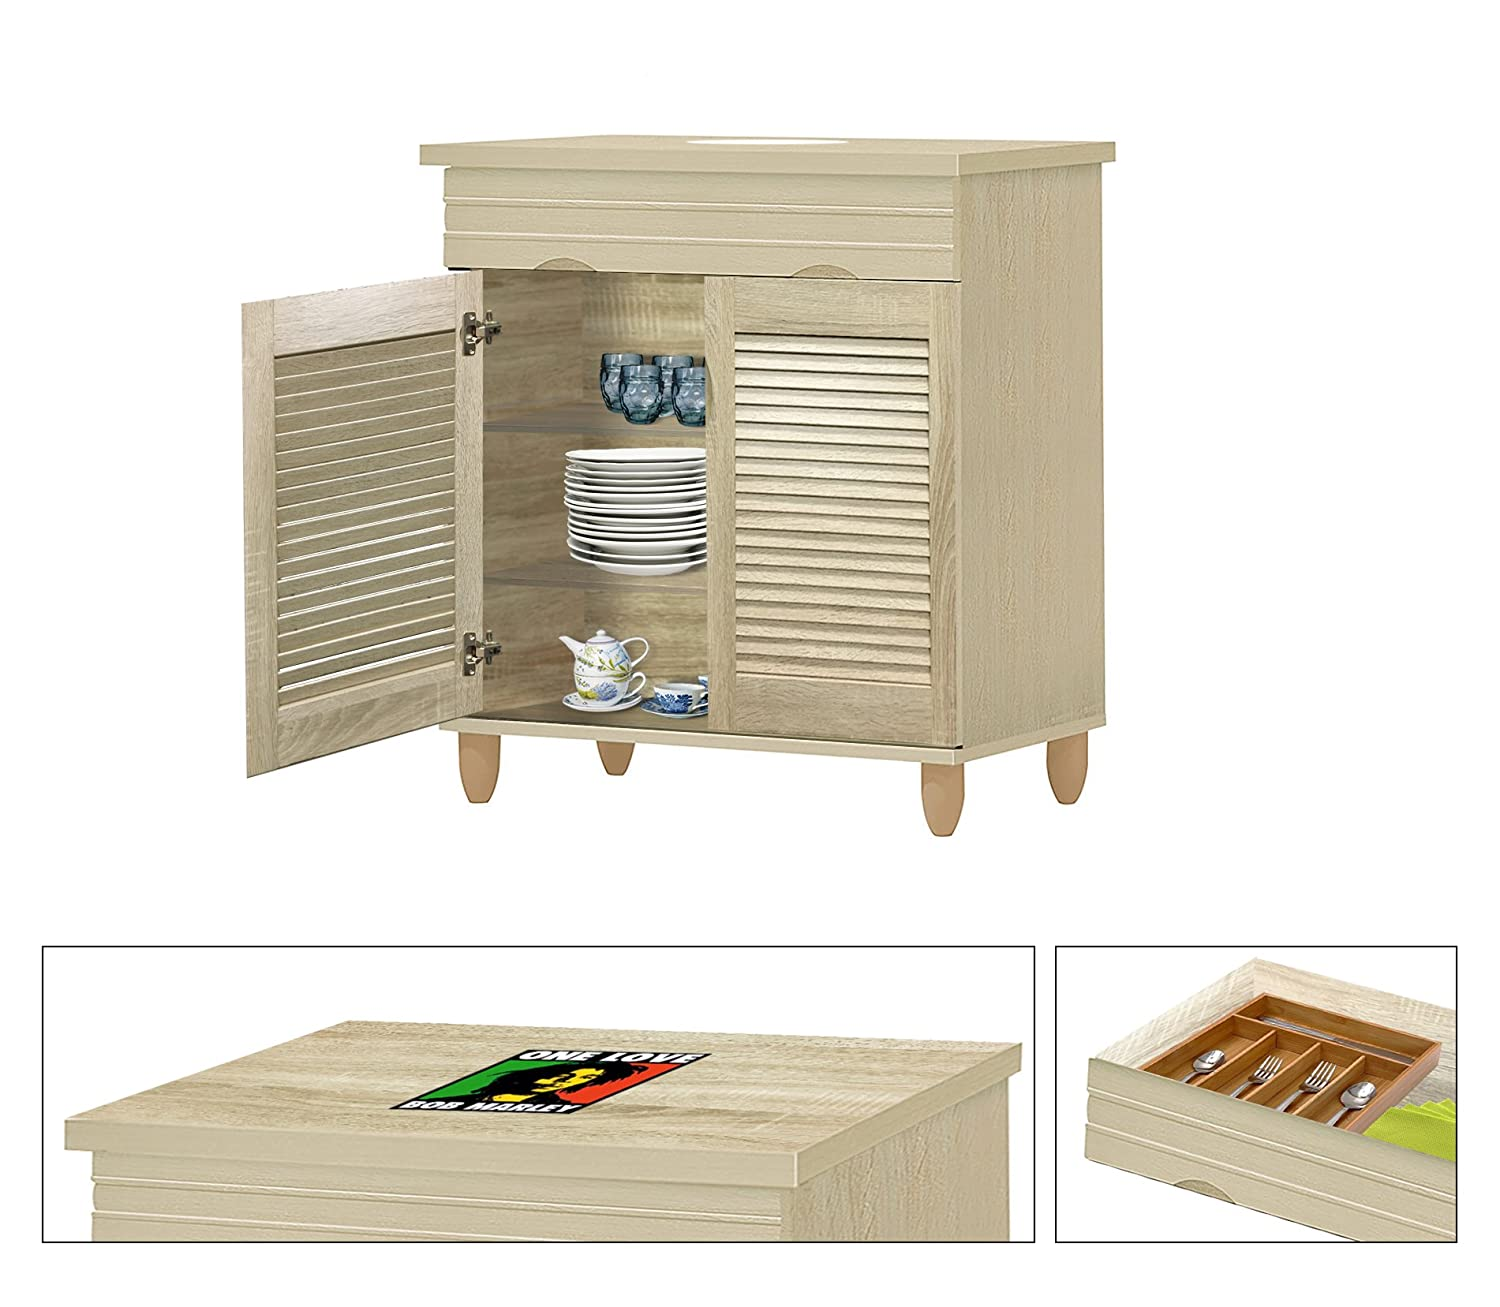 NEW! Kitchen Buffet Hutch with Drawer in a Beige Whitewash Finish Featuring the Choice of Your Favorite Novelty Themed Logo Decal-KITCHENWARE NOT INCLUDED (Bob Marley)